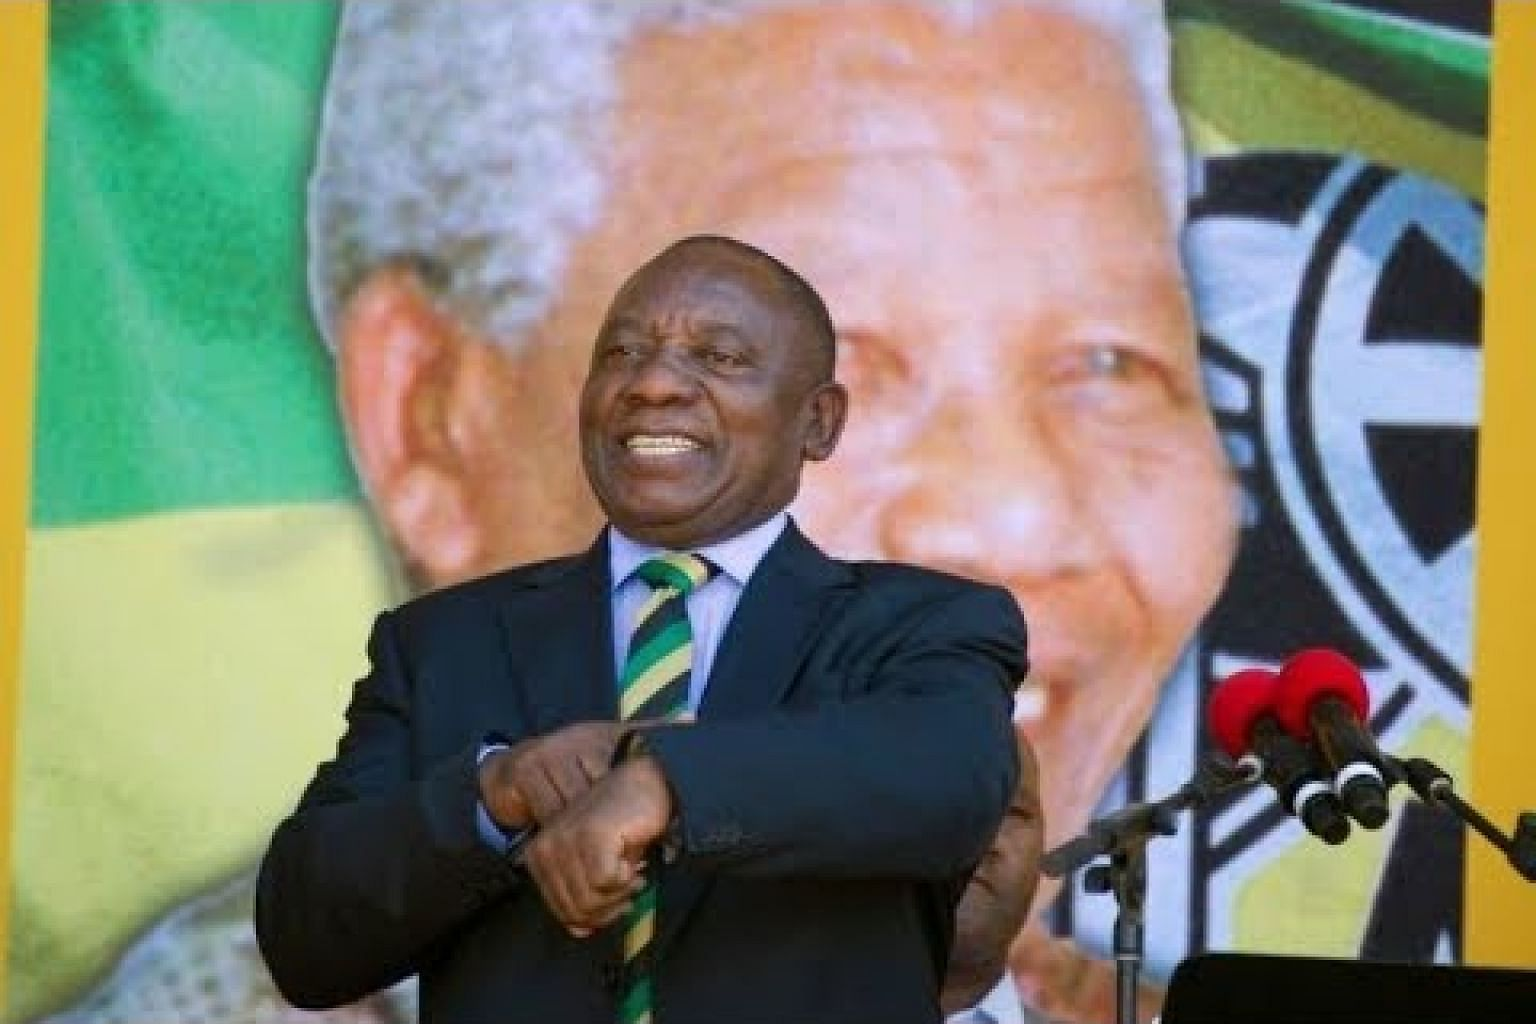 Cyril Ramaphosa elected South Africa president, vows anti-corruption fight